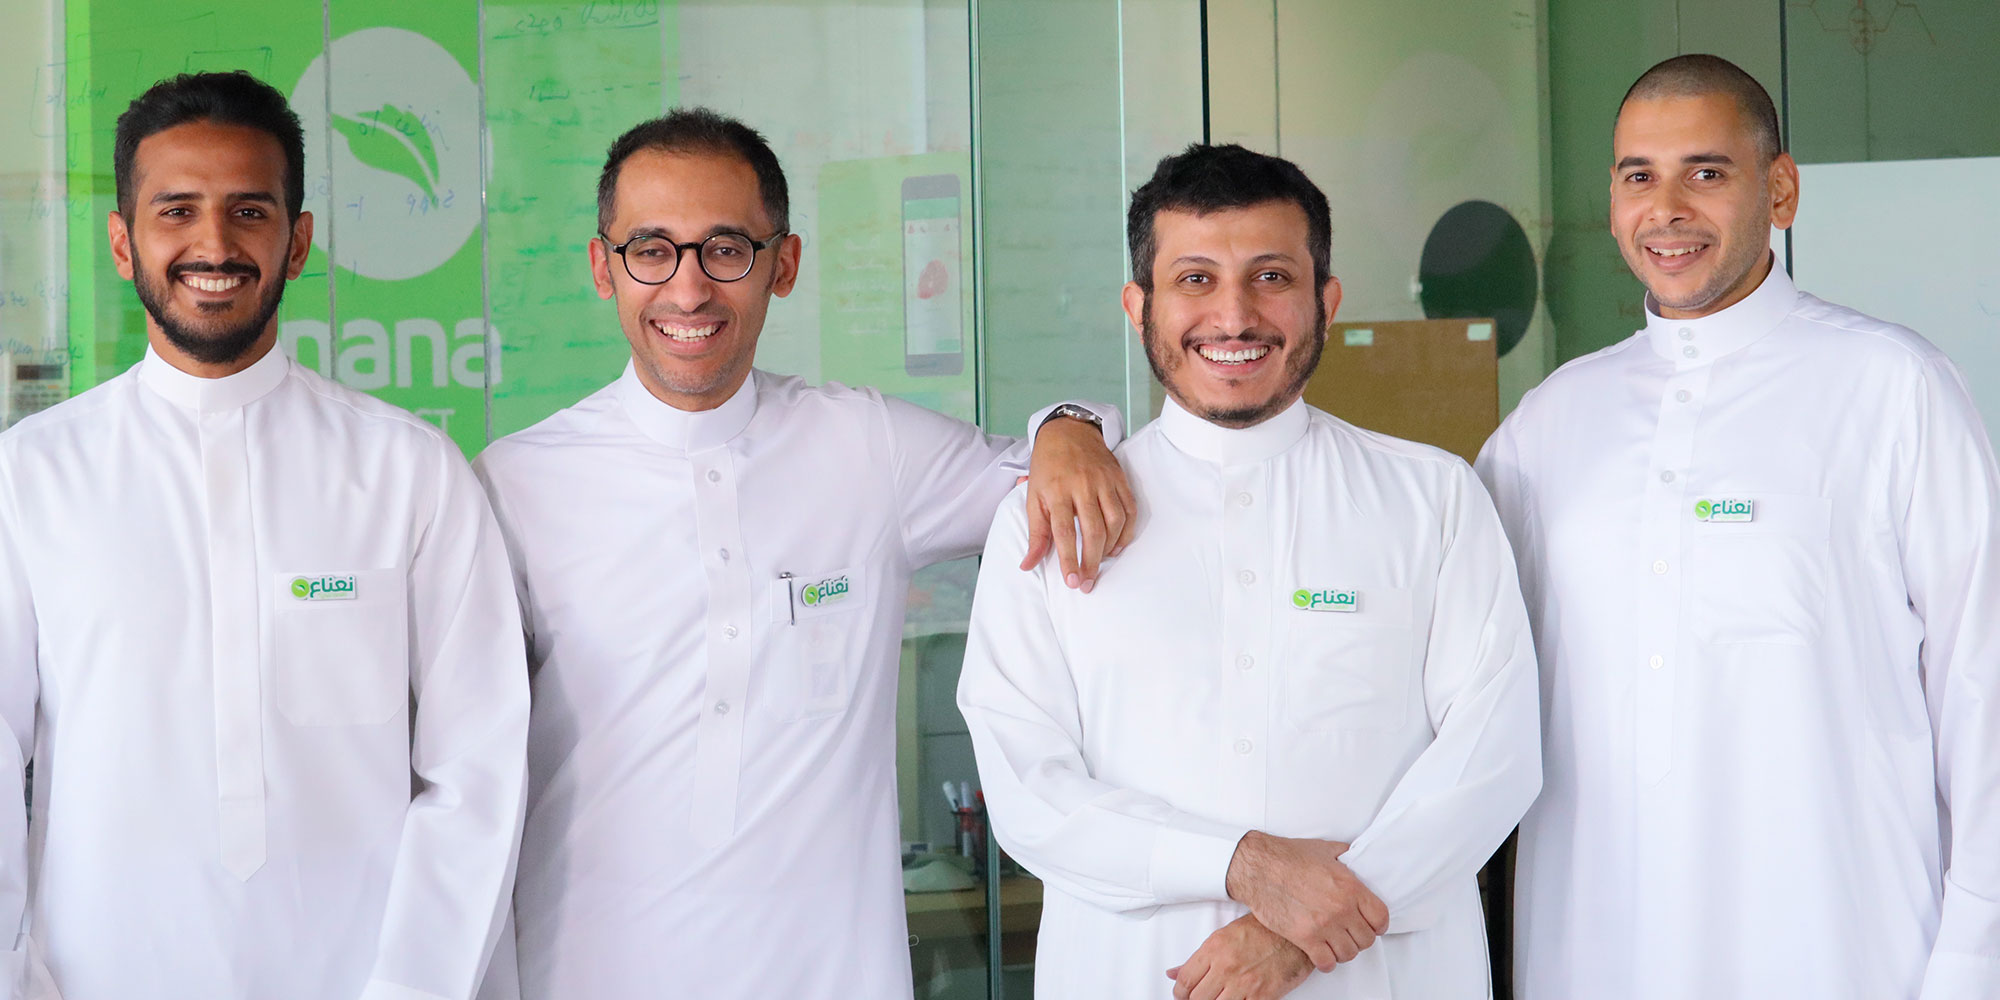 SAUDI ARABIA'S LEADING ONLINE GROCERY PLATFORM NANA (نعناع) RAISES USD 6.6MM IN SERIES A FINANCING CO-LED BY MEVP